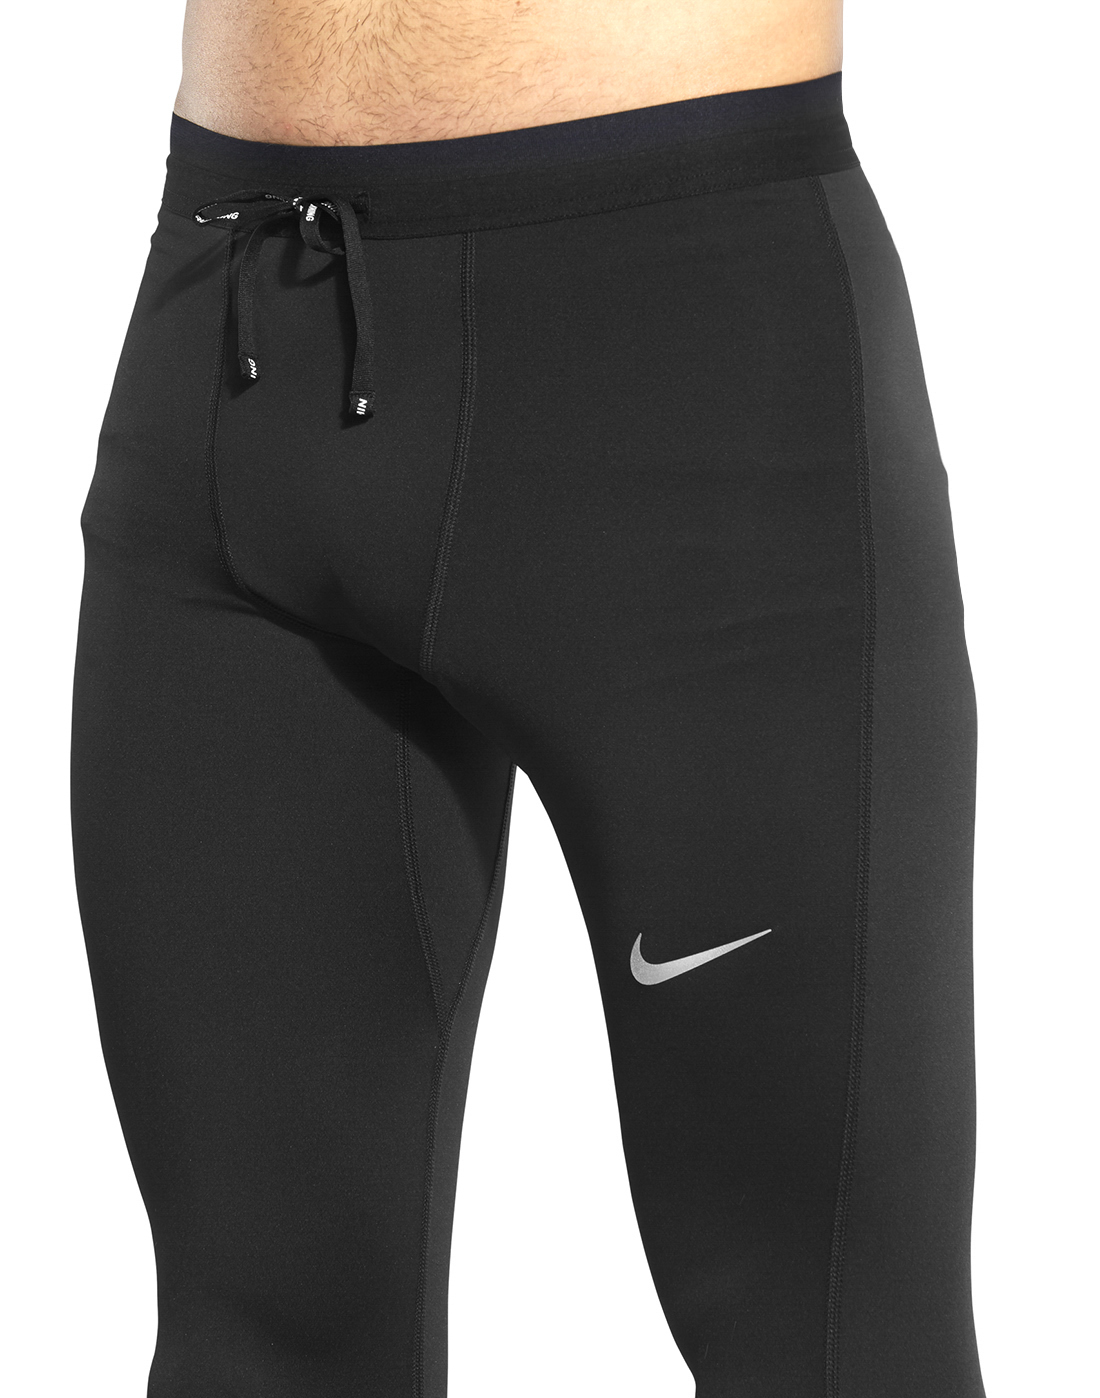 9f0c9960c92f7 Men's black Nike Running Mobility Tights | Life Style Sports